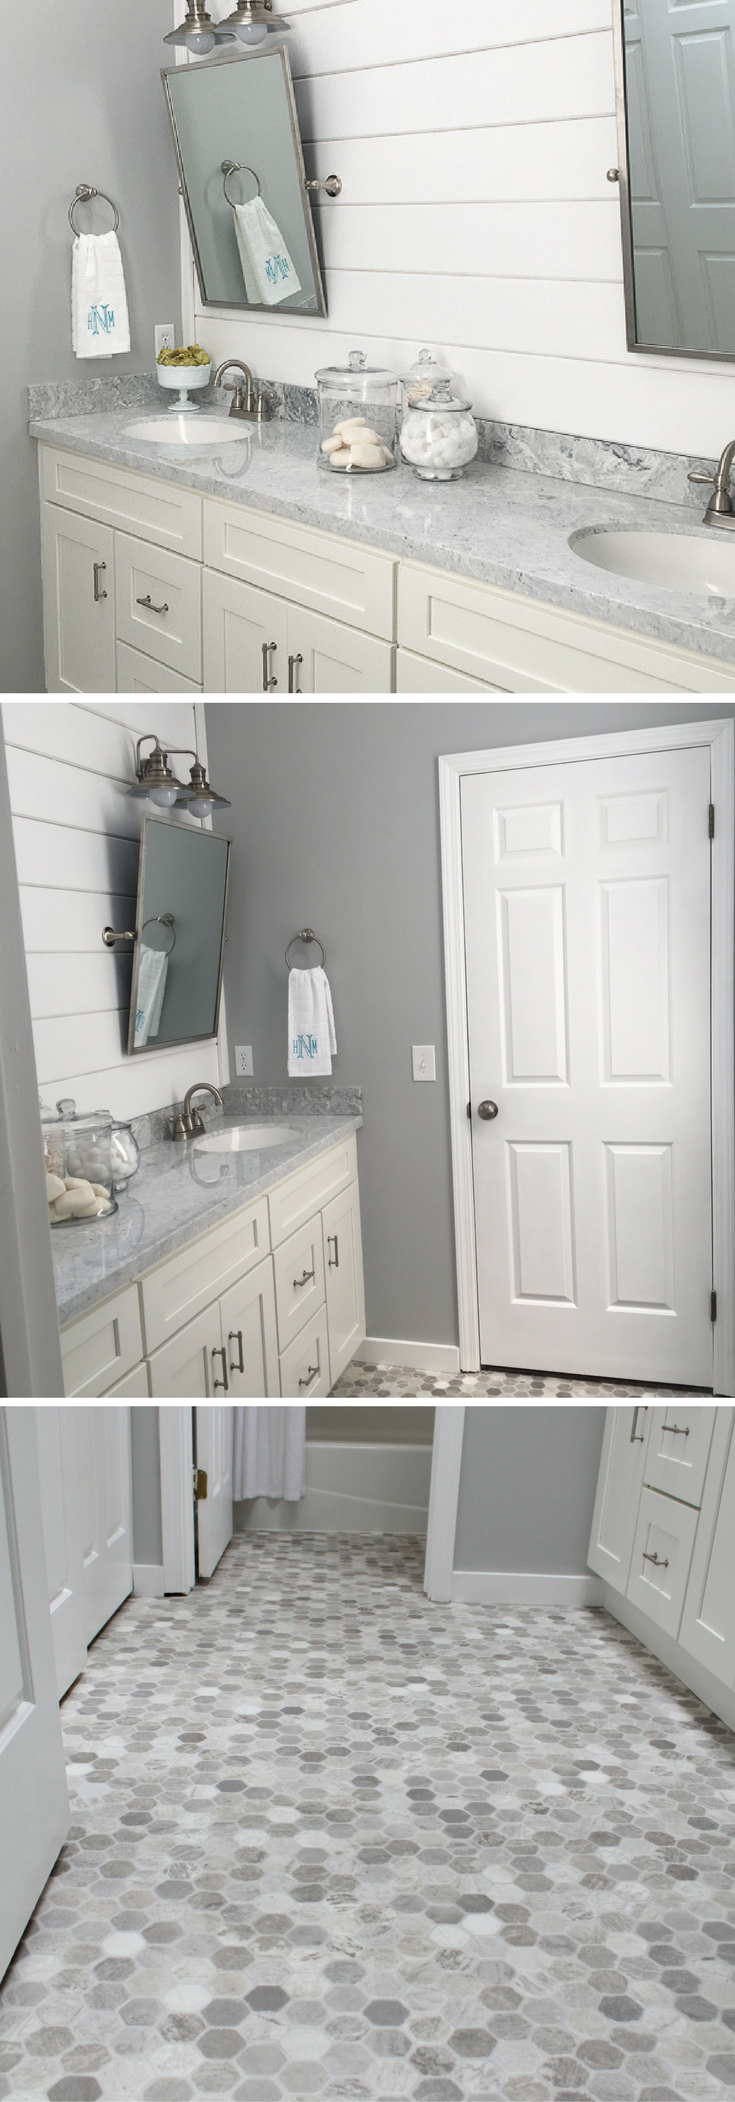 How to Remodel Your Master Bathroom on a Budget | Renovieren